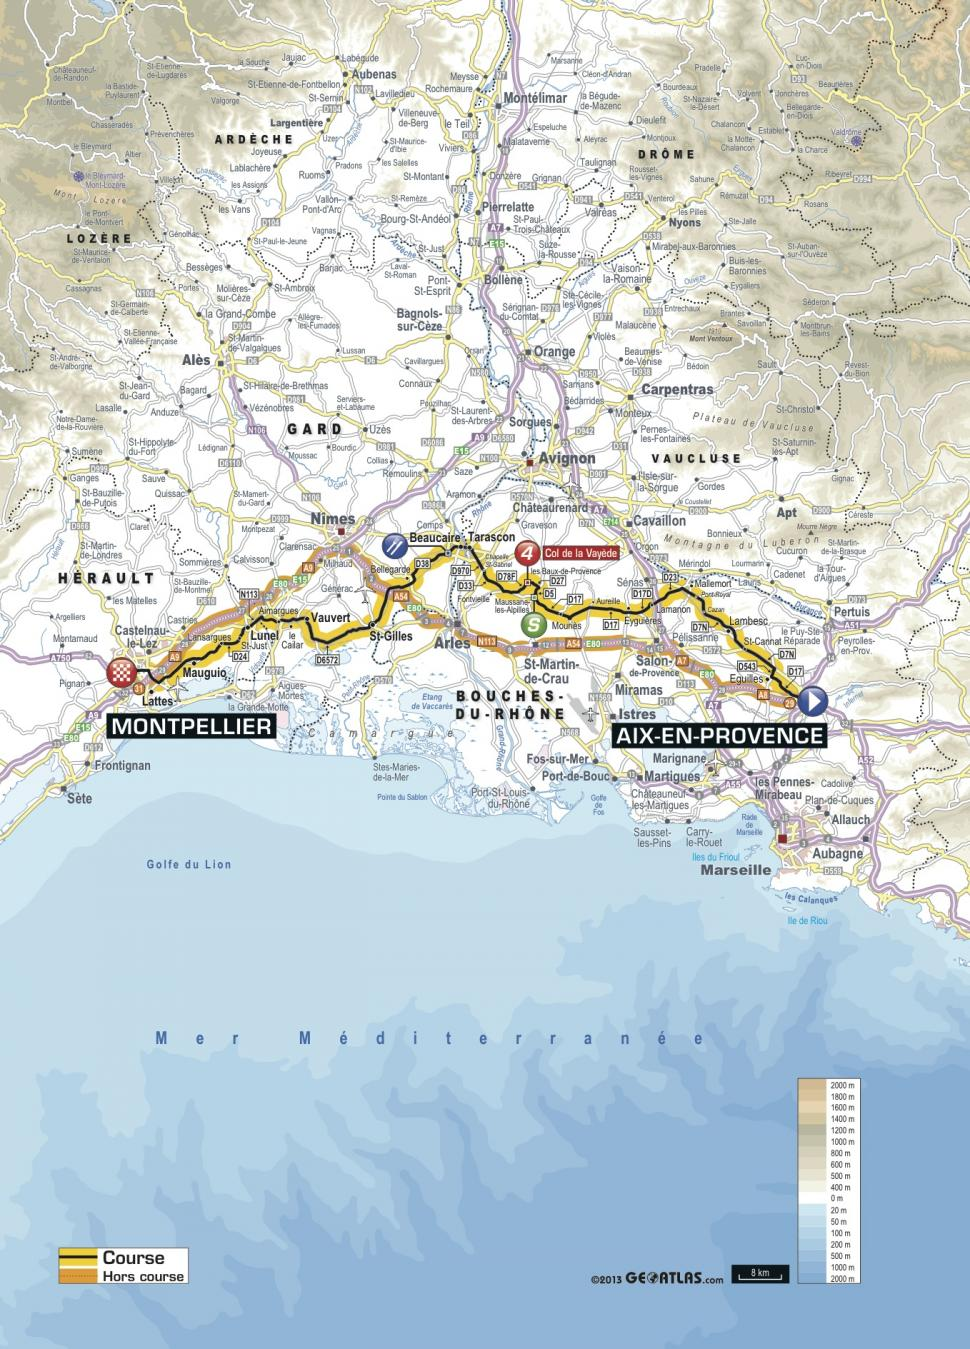 Carte tour de france 2013 mont ventoux webcam